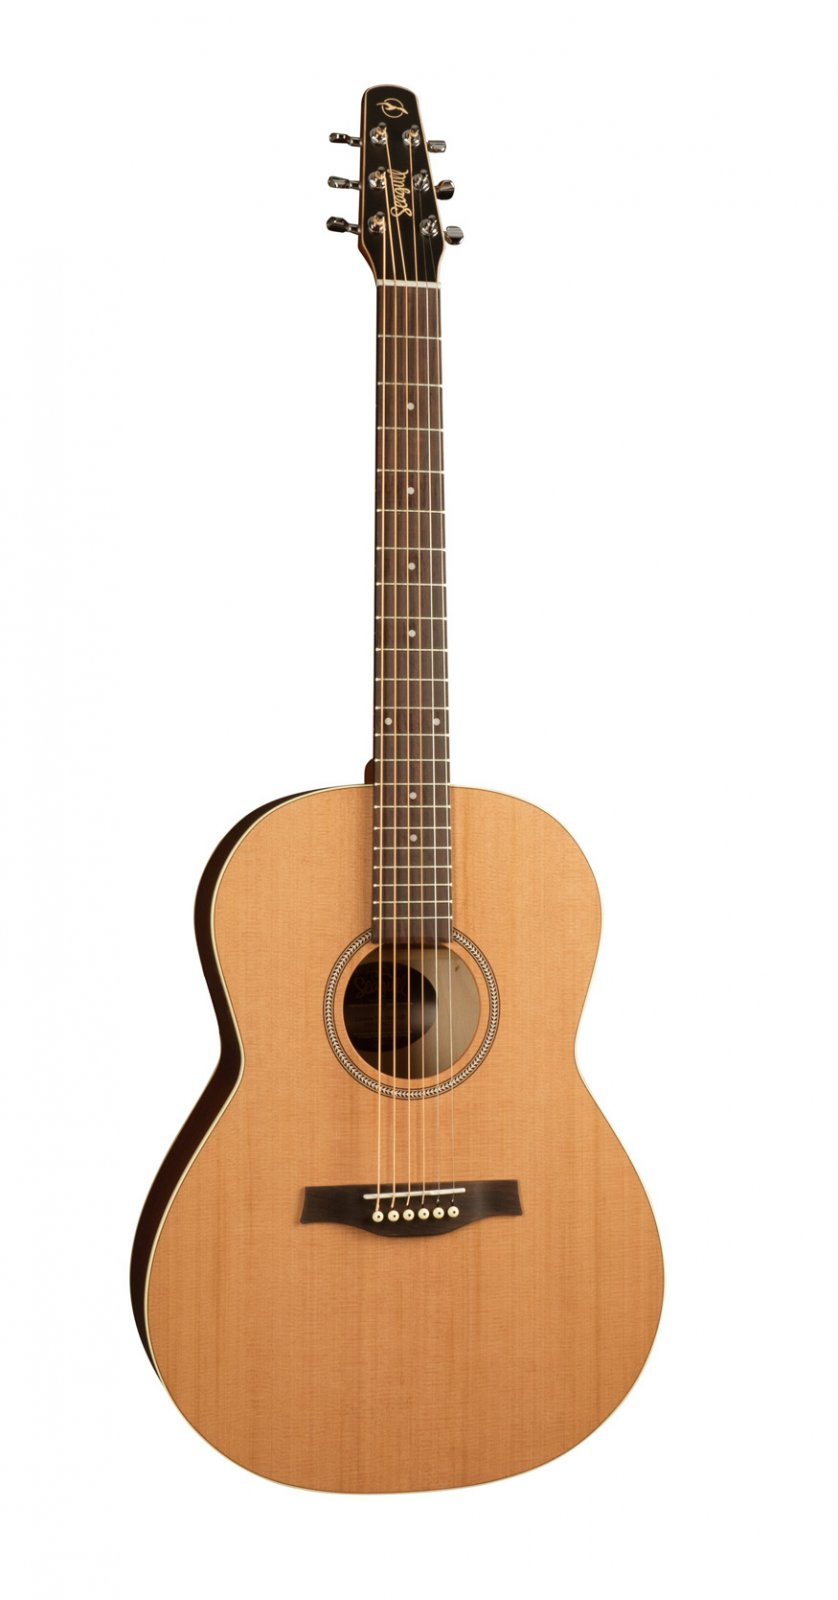 Seagull Coastline Folk Cedar QI Acoustic-Electric Guitar